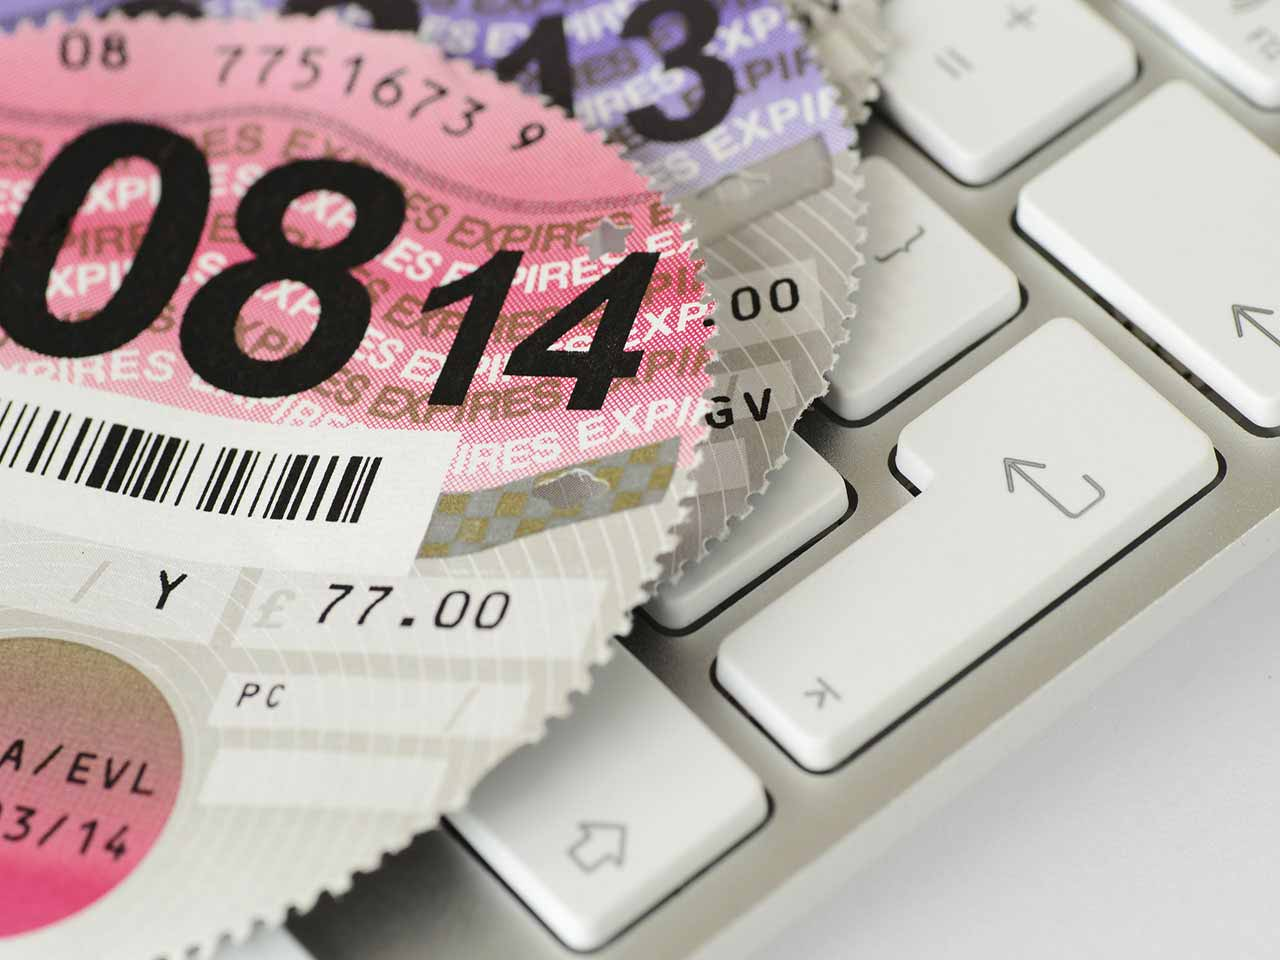 Road tax discs on a computer keyboard to represent the car tax refund email scam